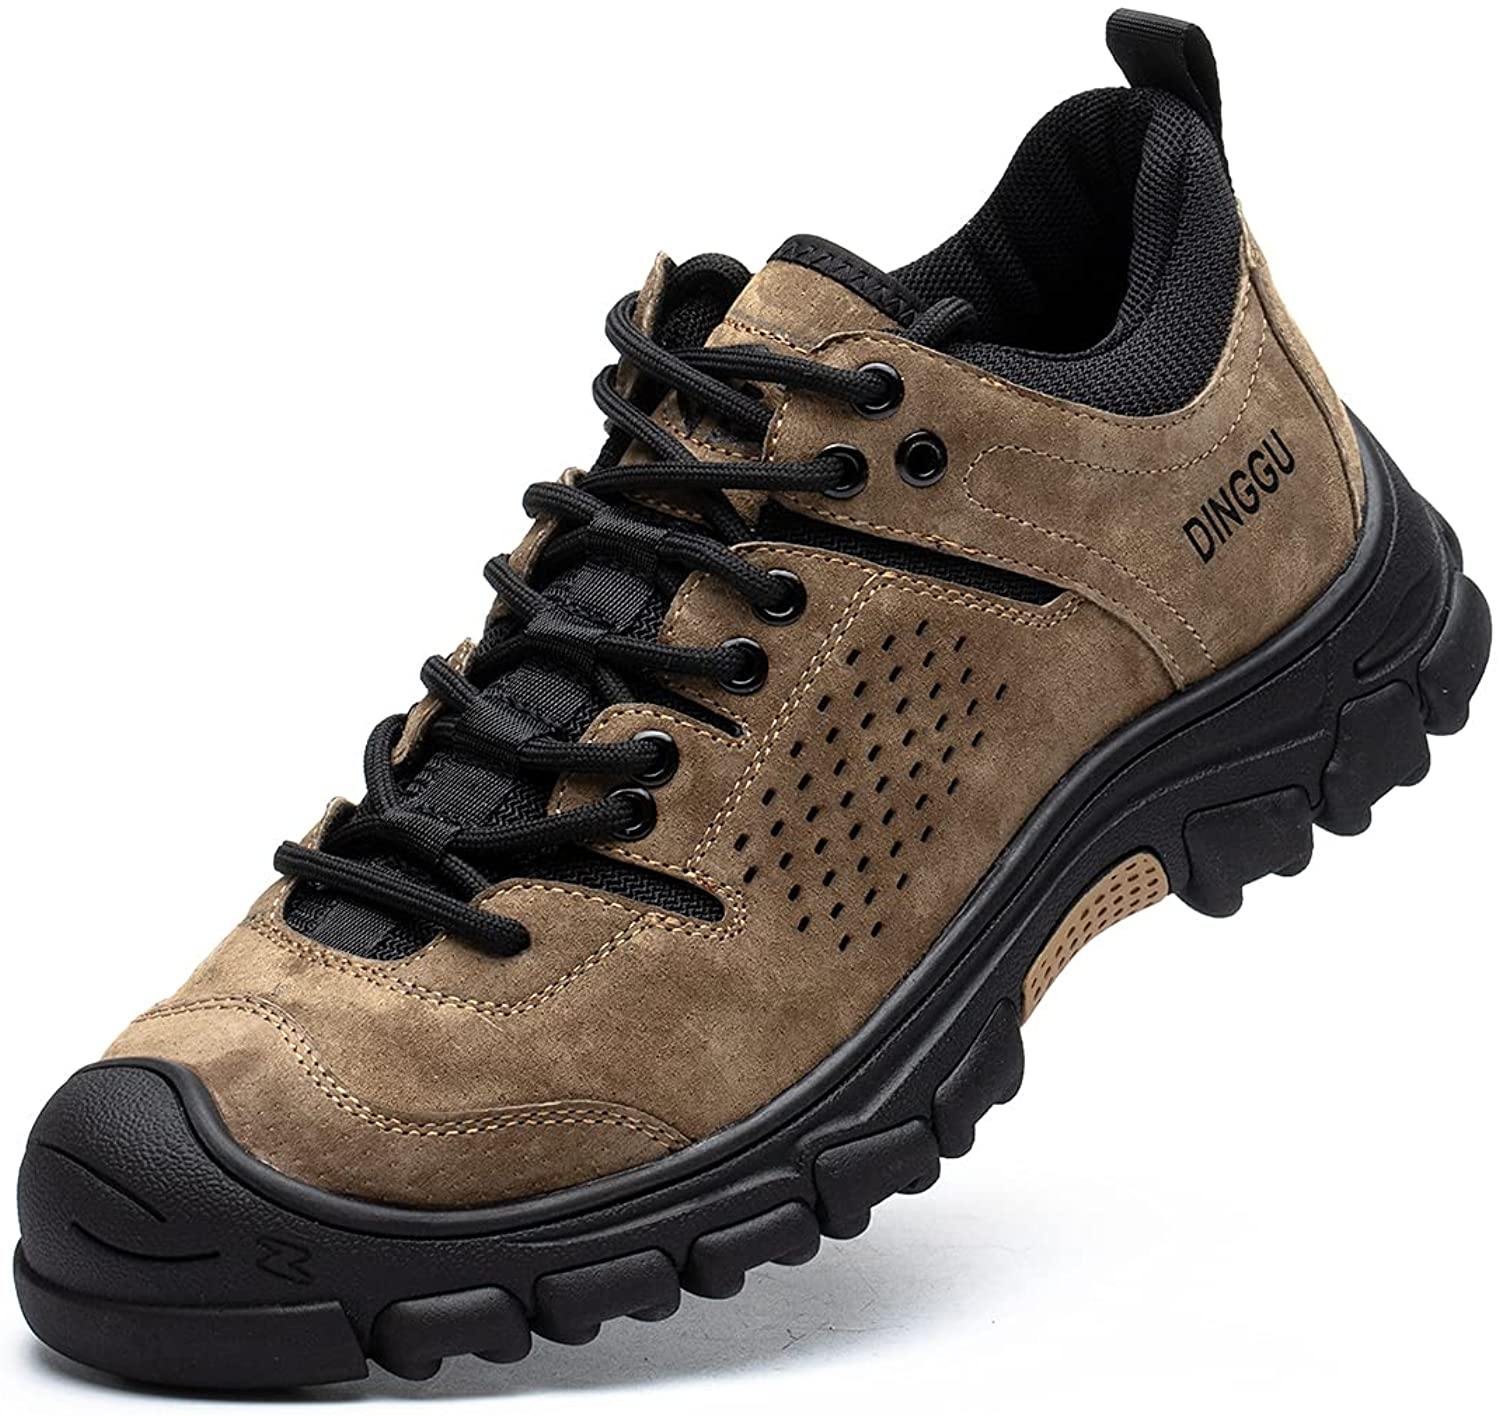 DINGGU Work Shoes for Men with Deodorant Insole Steel Toe Sneakers for Men Lightweight and Comfortable Slip Resistant Mens Work Shoes, MSDG019-Brown